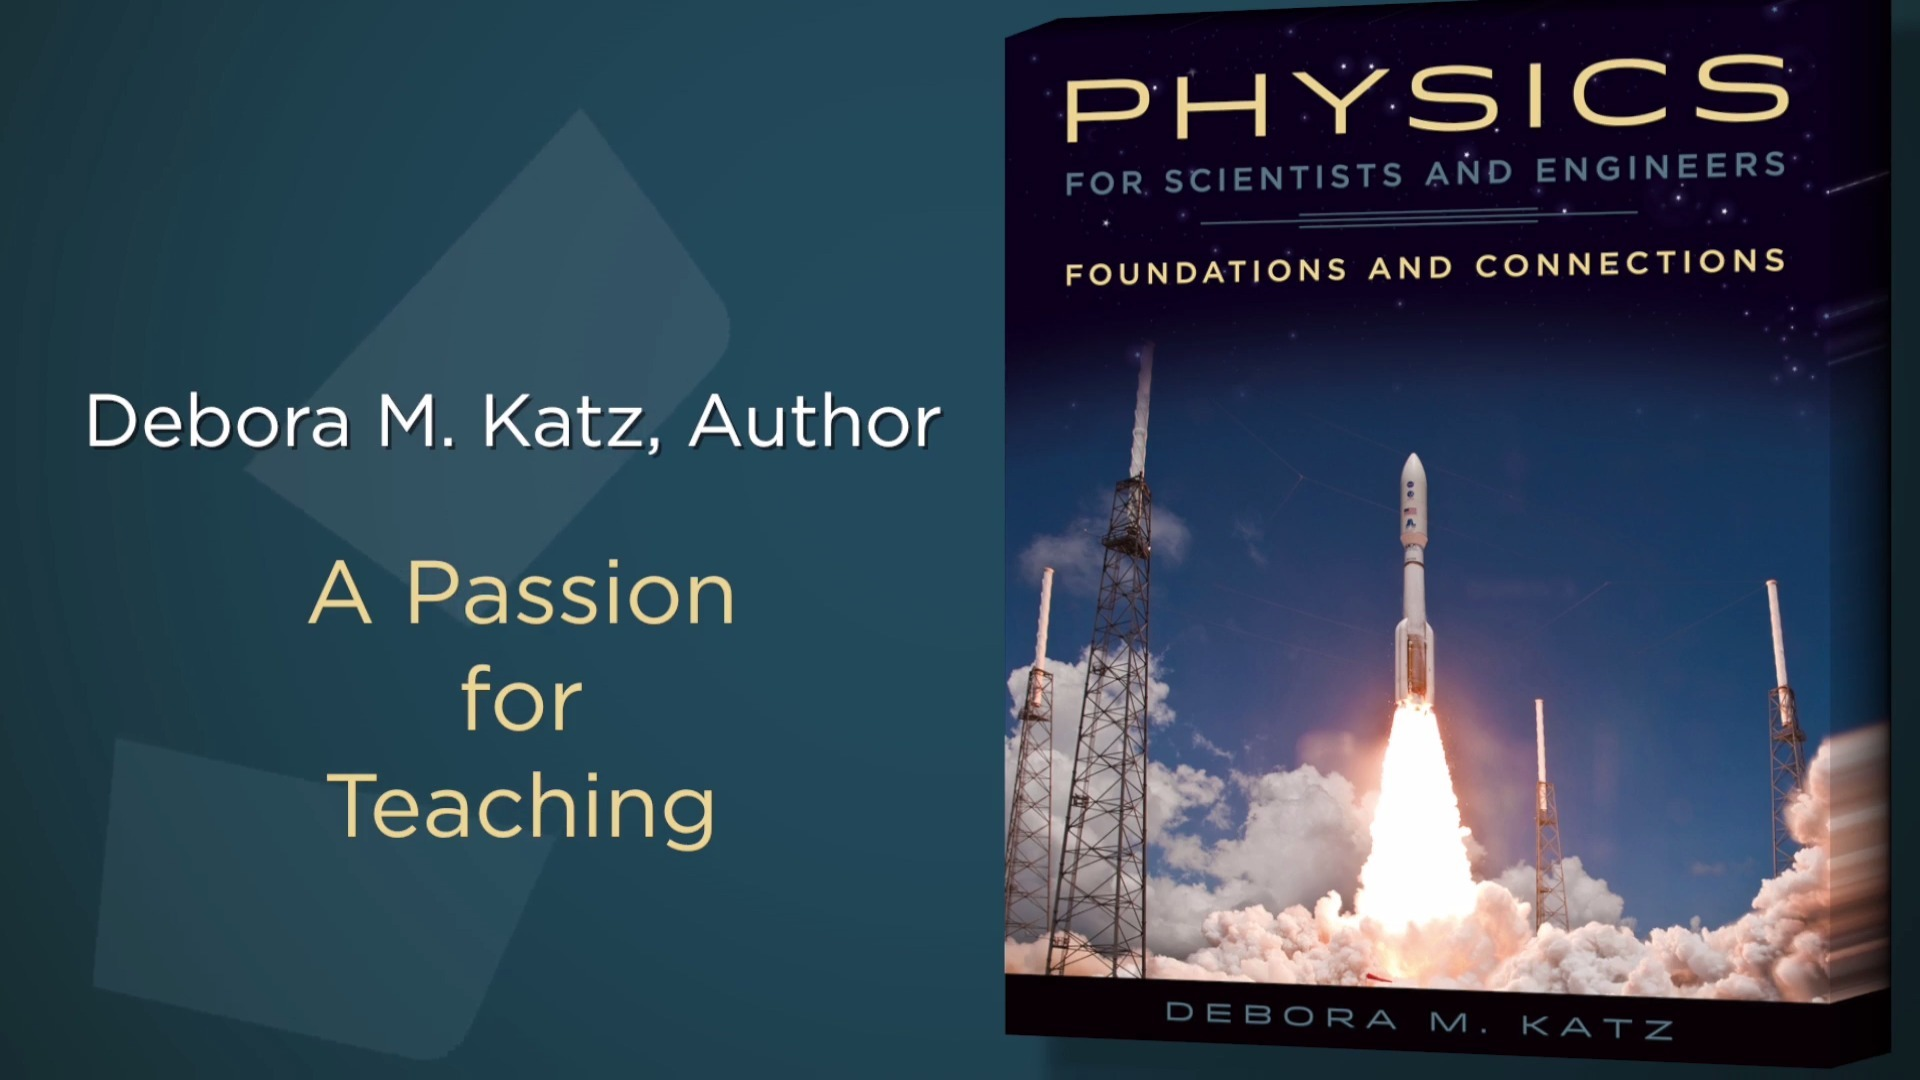 Debora Katz's Physics for Scientists and Engineers: A Passion for Teaching